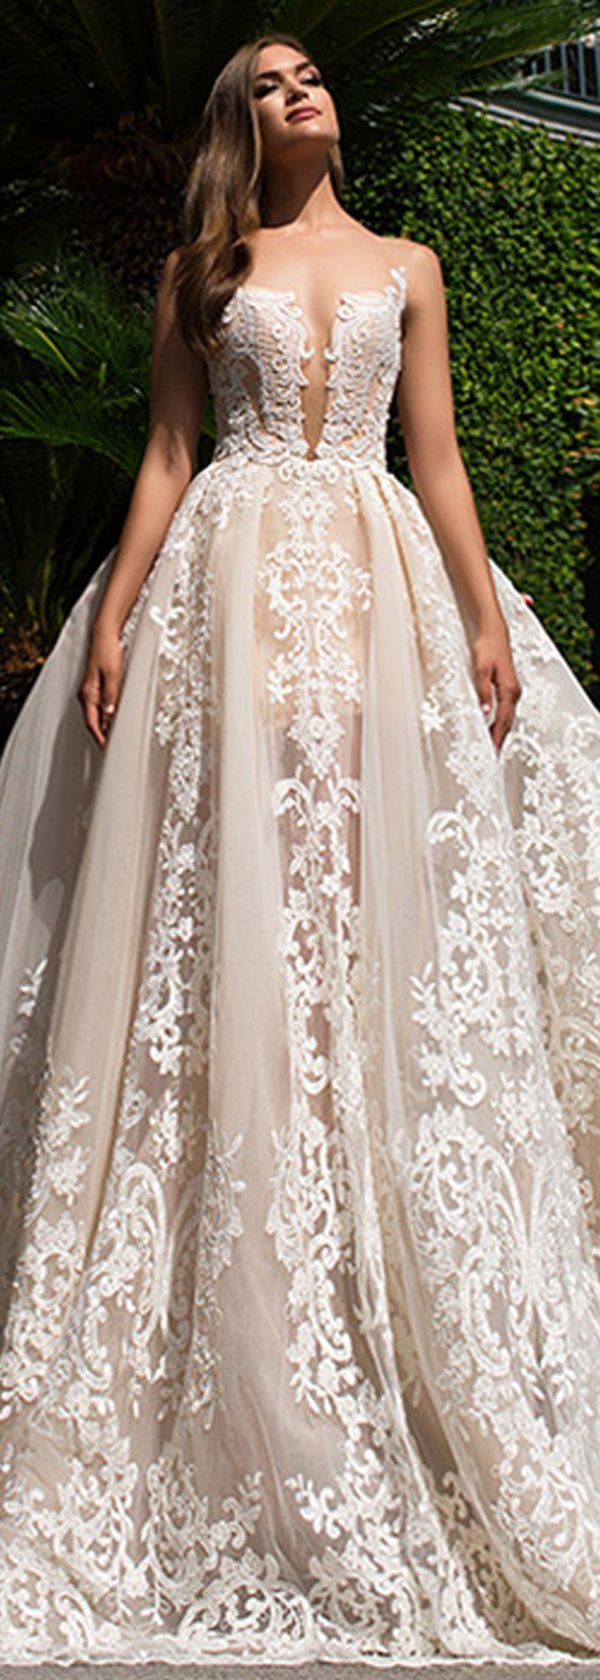 Fabulous Tulle & Organza Bateau Neckline See-through A-Line Wedding Dresses With Lace Appliques